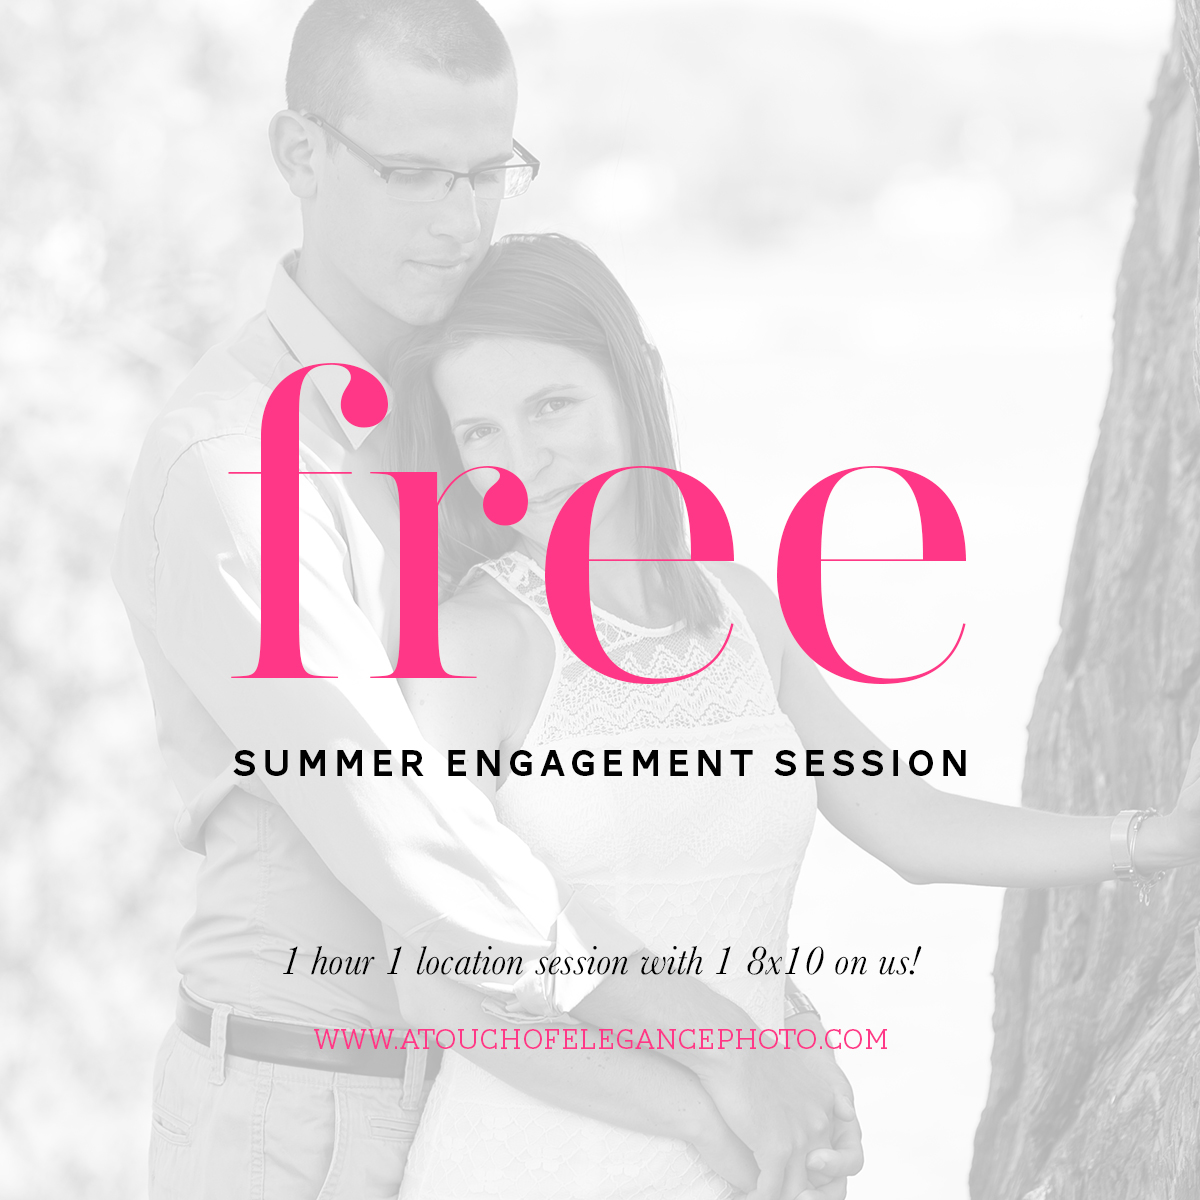 rochester summer engagement session